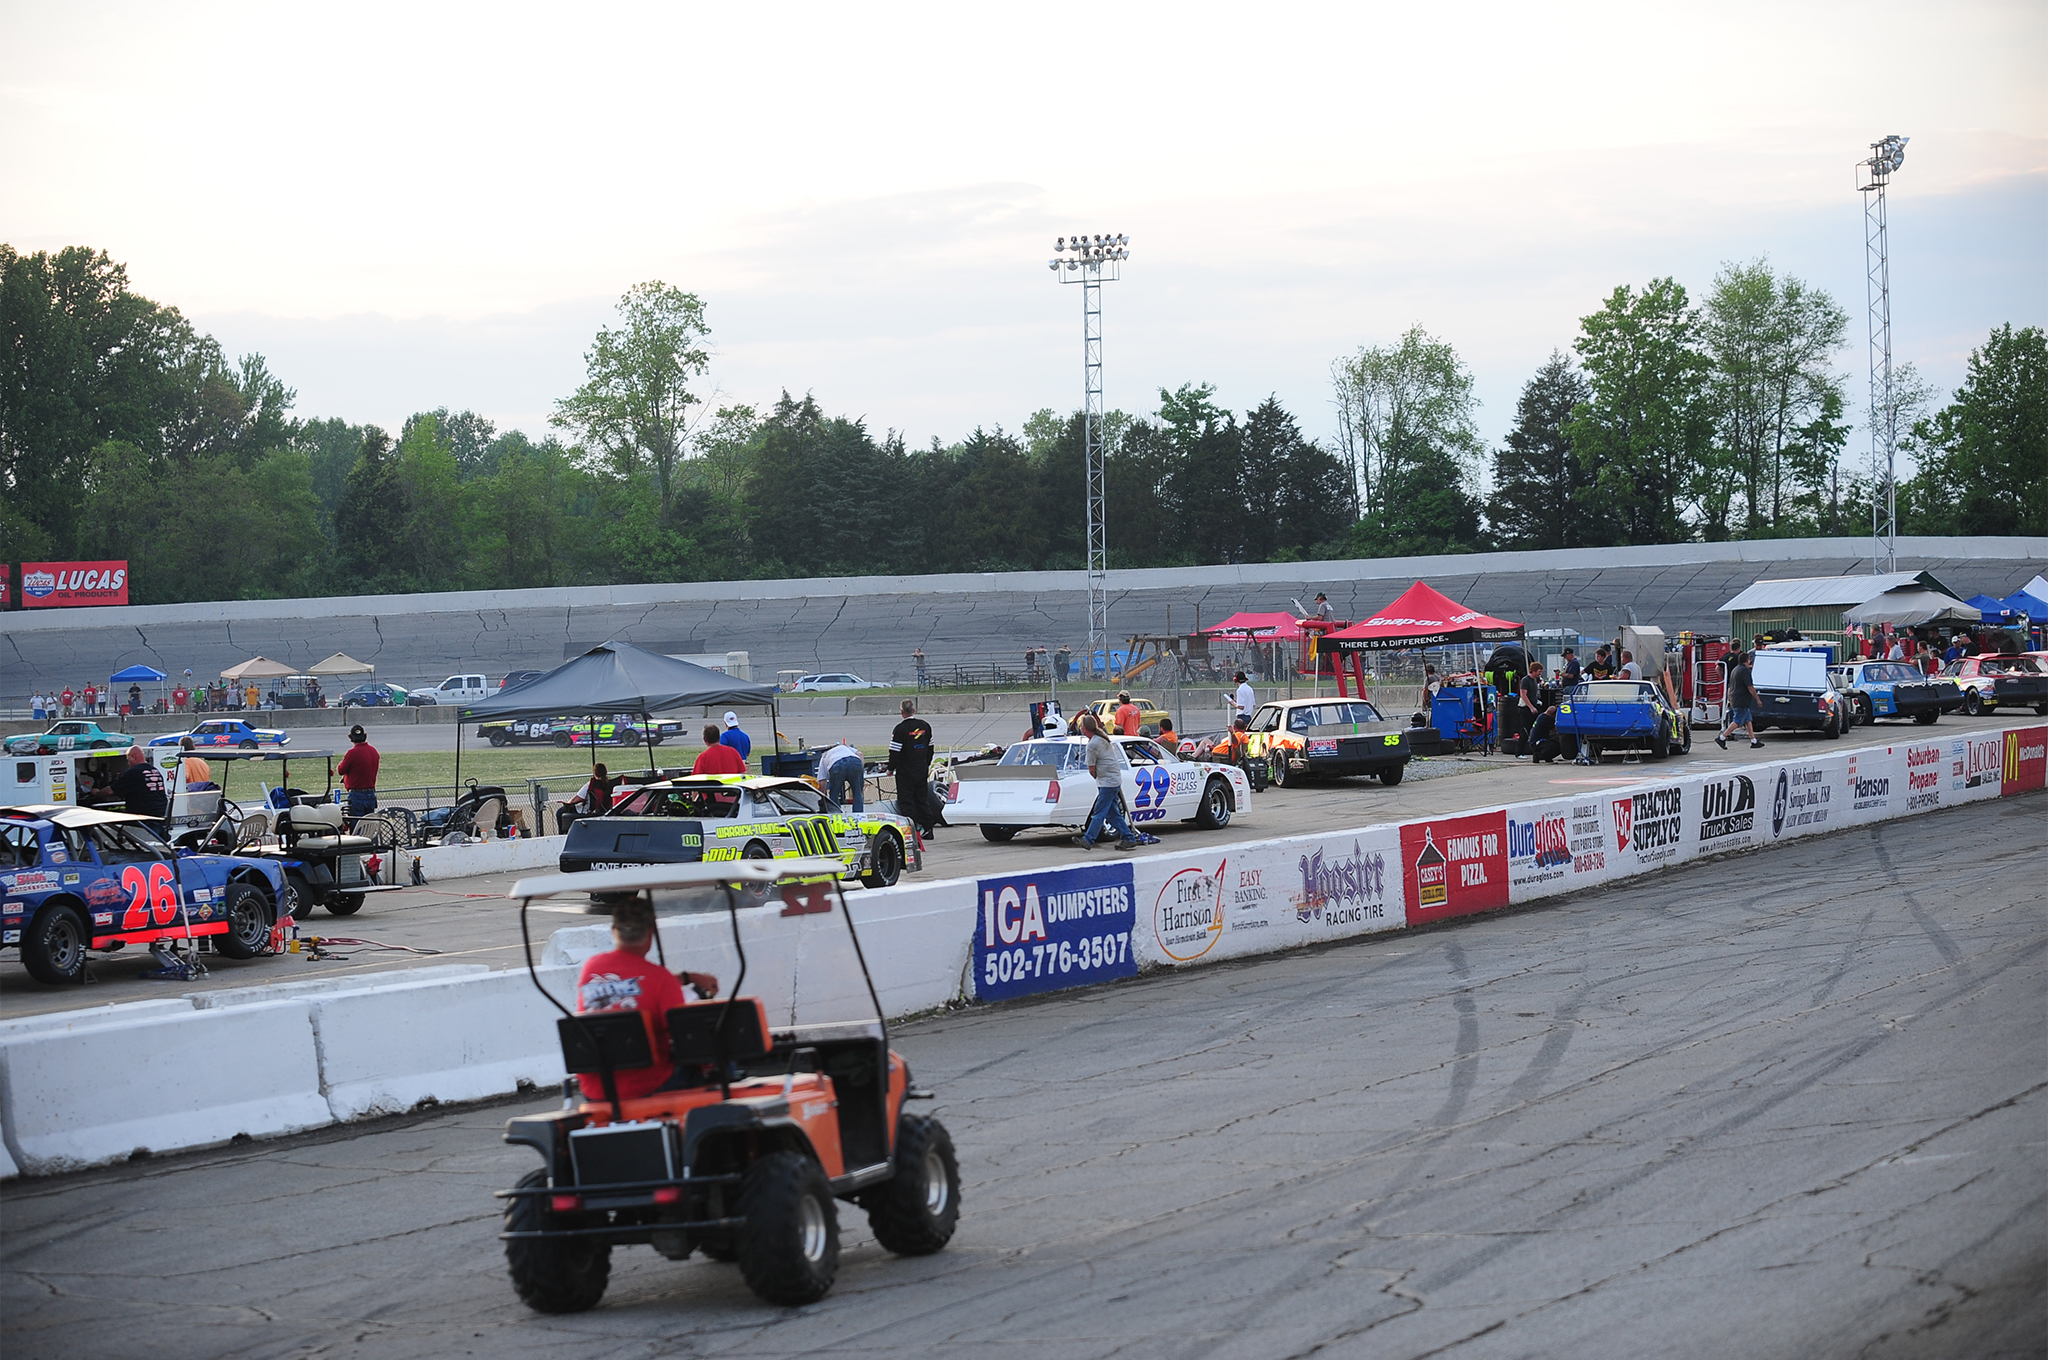 You can see Salem's Pure Stock support division running on the inside oval in this shot of the G.A.R.S. cars on pit road. In addition to the Pure Stocks, we also ran the Four Cylinder class to the delight of the fans. At a G.A.R.S. race there's always going to be on track action happening.